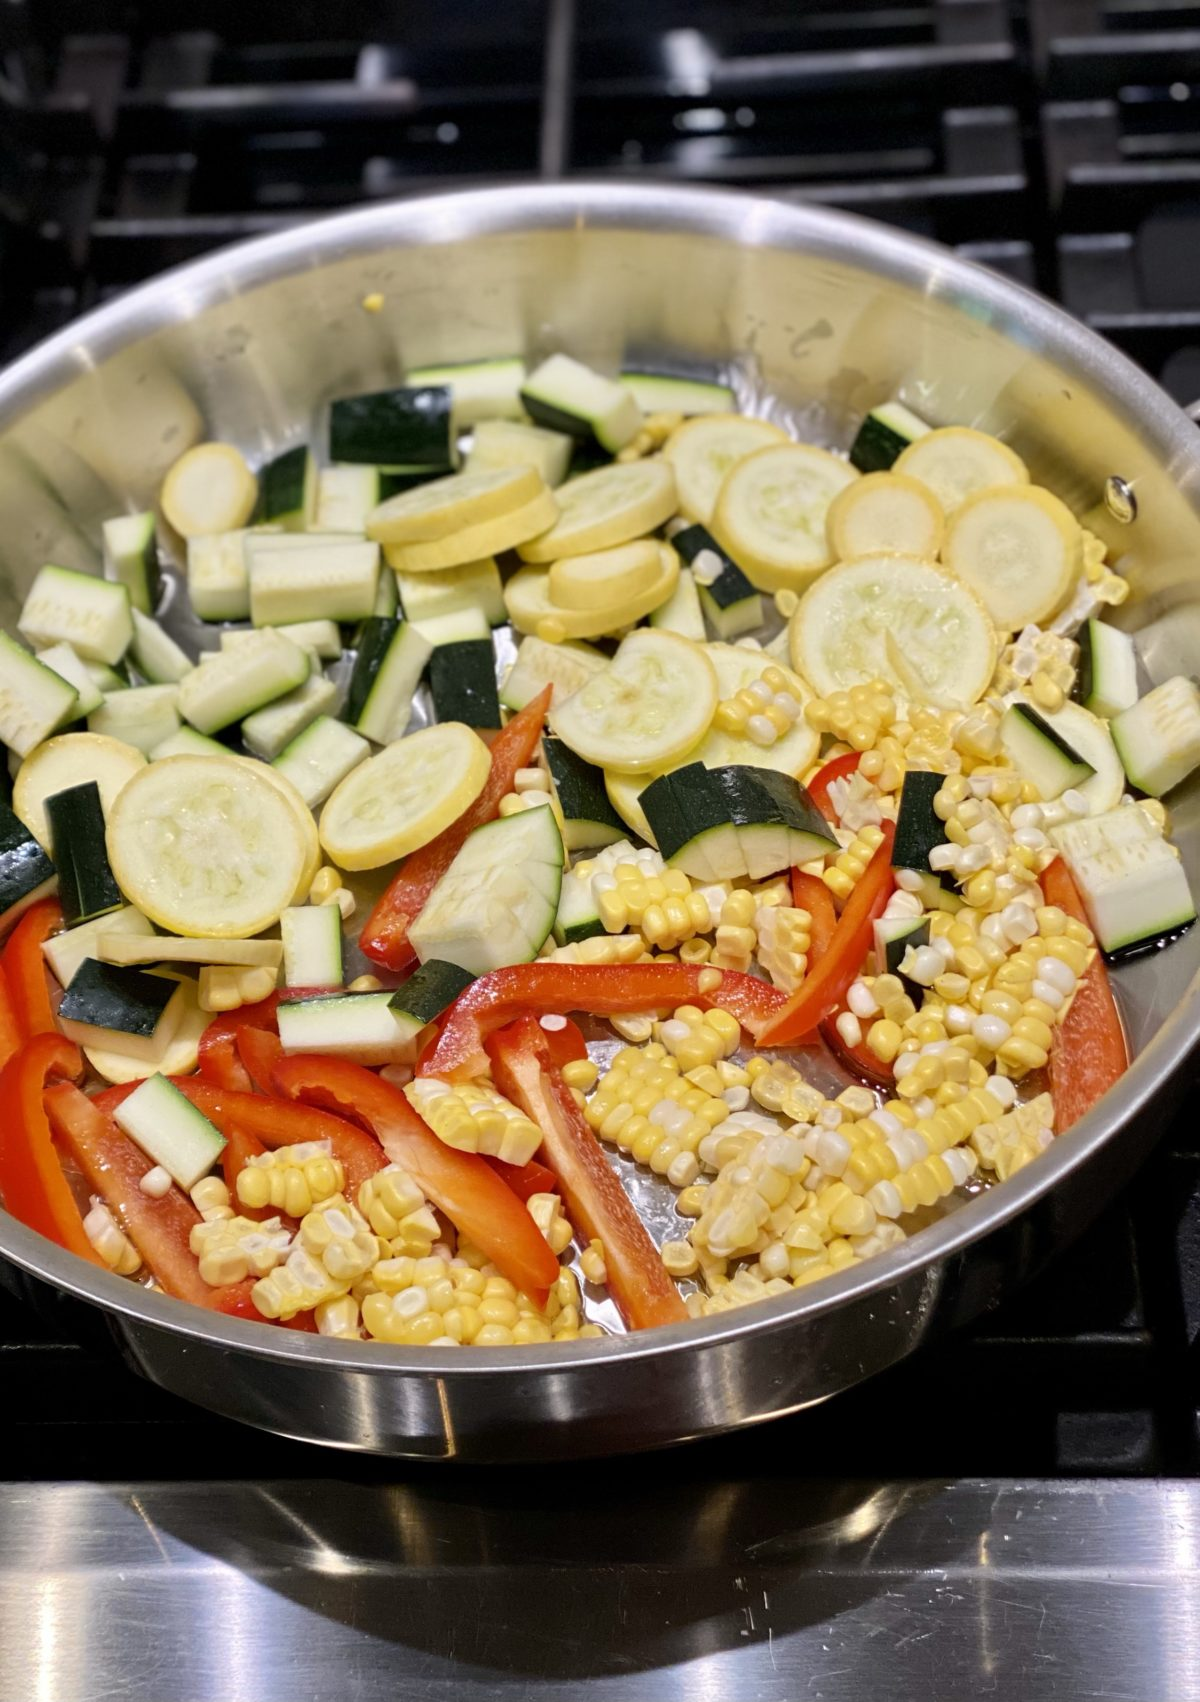 Large skillet with various diced summer veggies